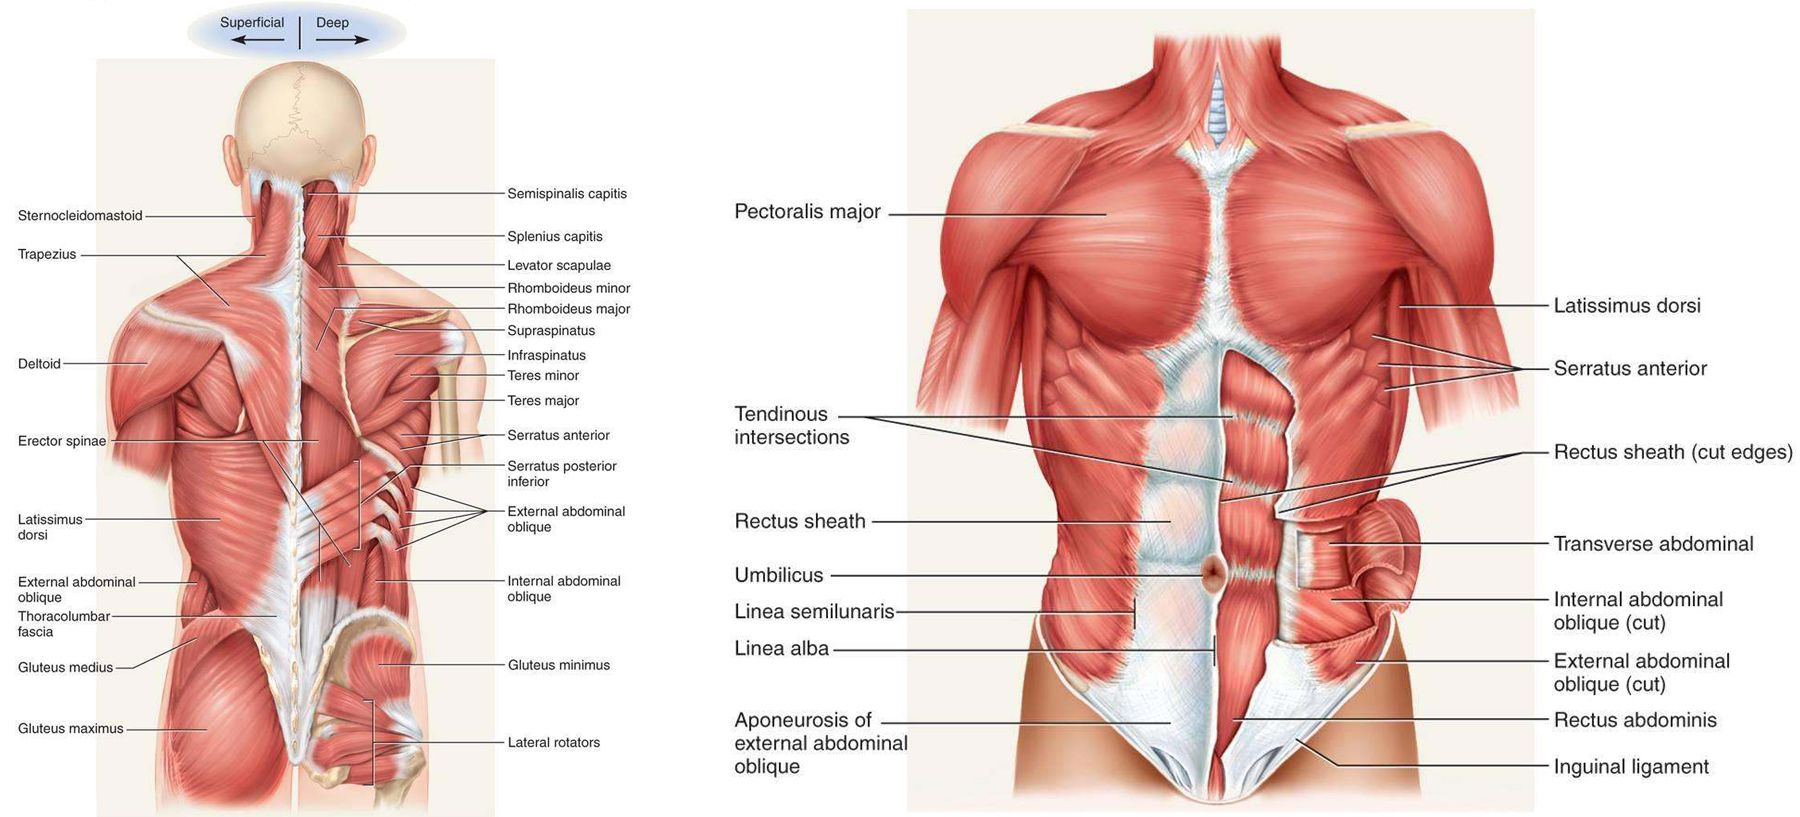 Thoracoappendicular Muscles